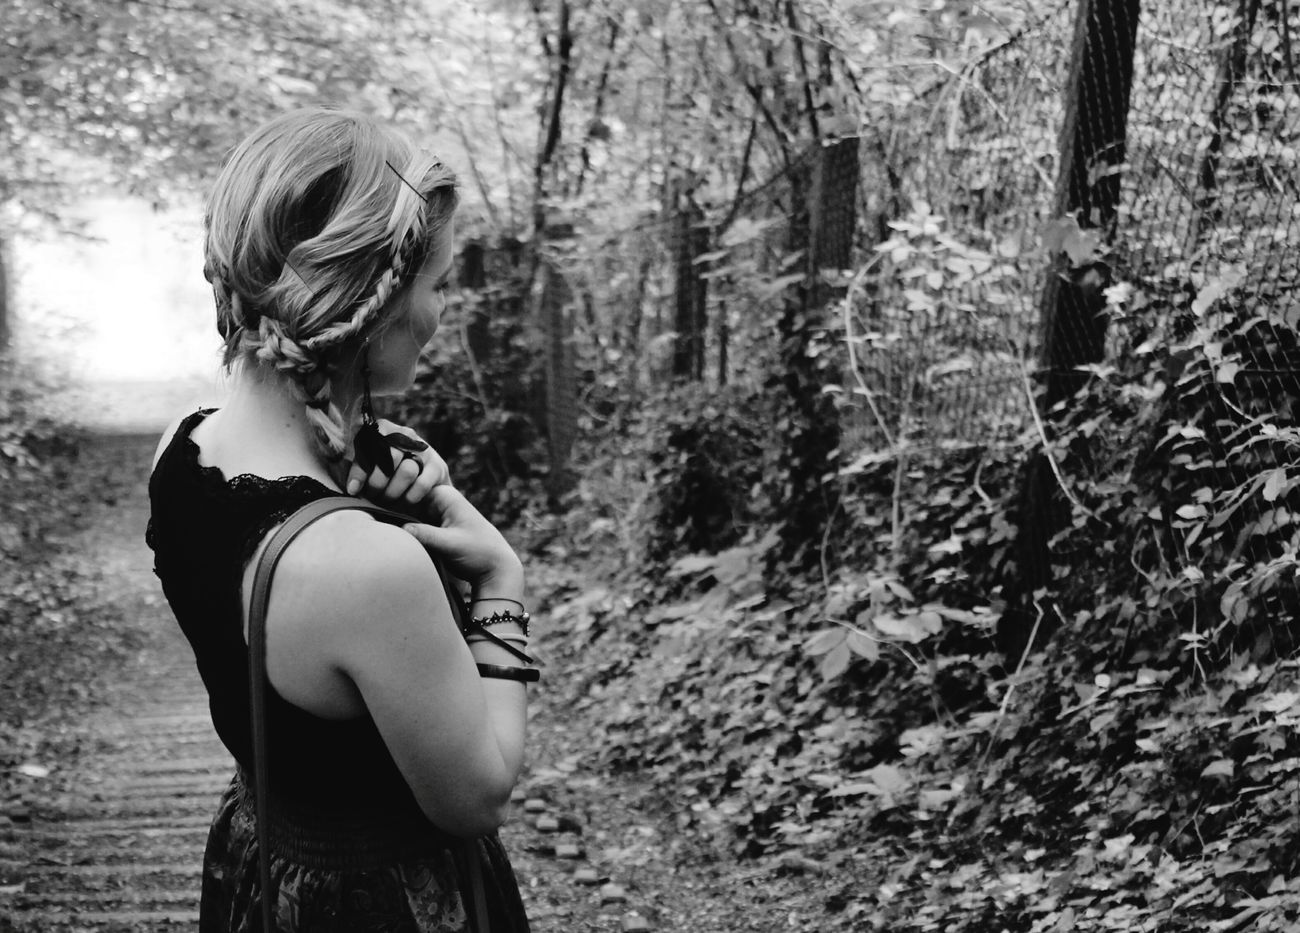 Me Myself Blackandwhite Blackandwhite Photography Black And White Portrait Forest Braids Braided Hair Braid Hair Forest Photography Forest Path Germany Girl